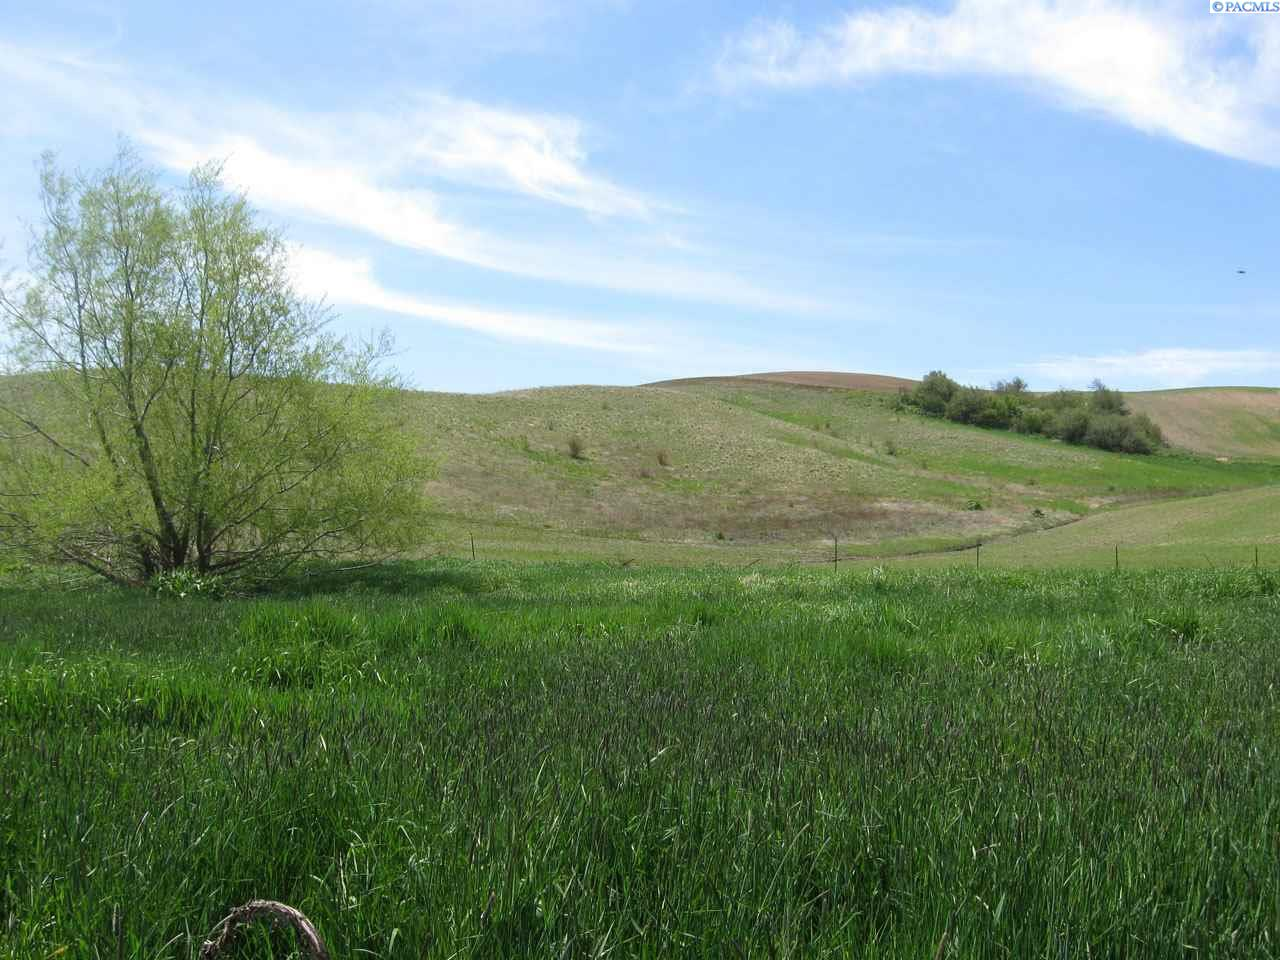 Land / Lots for Sale at Tbd Becker Road Tbd Becker Road Colton, Washington 99113 United States